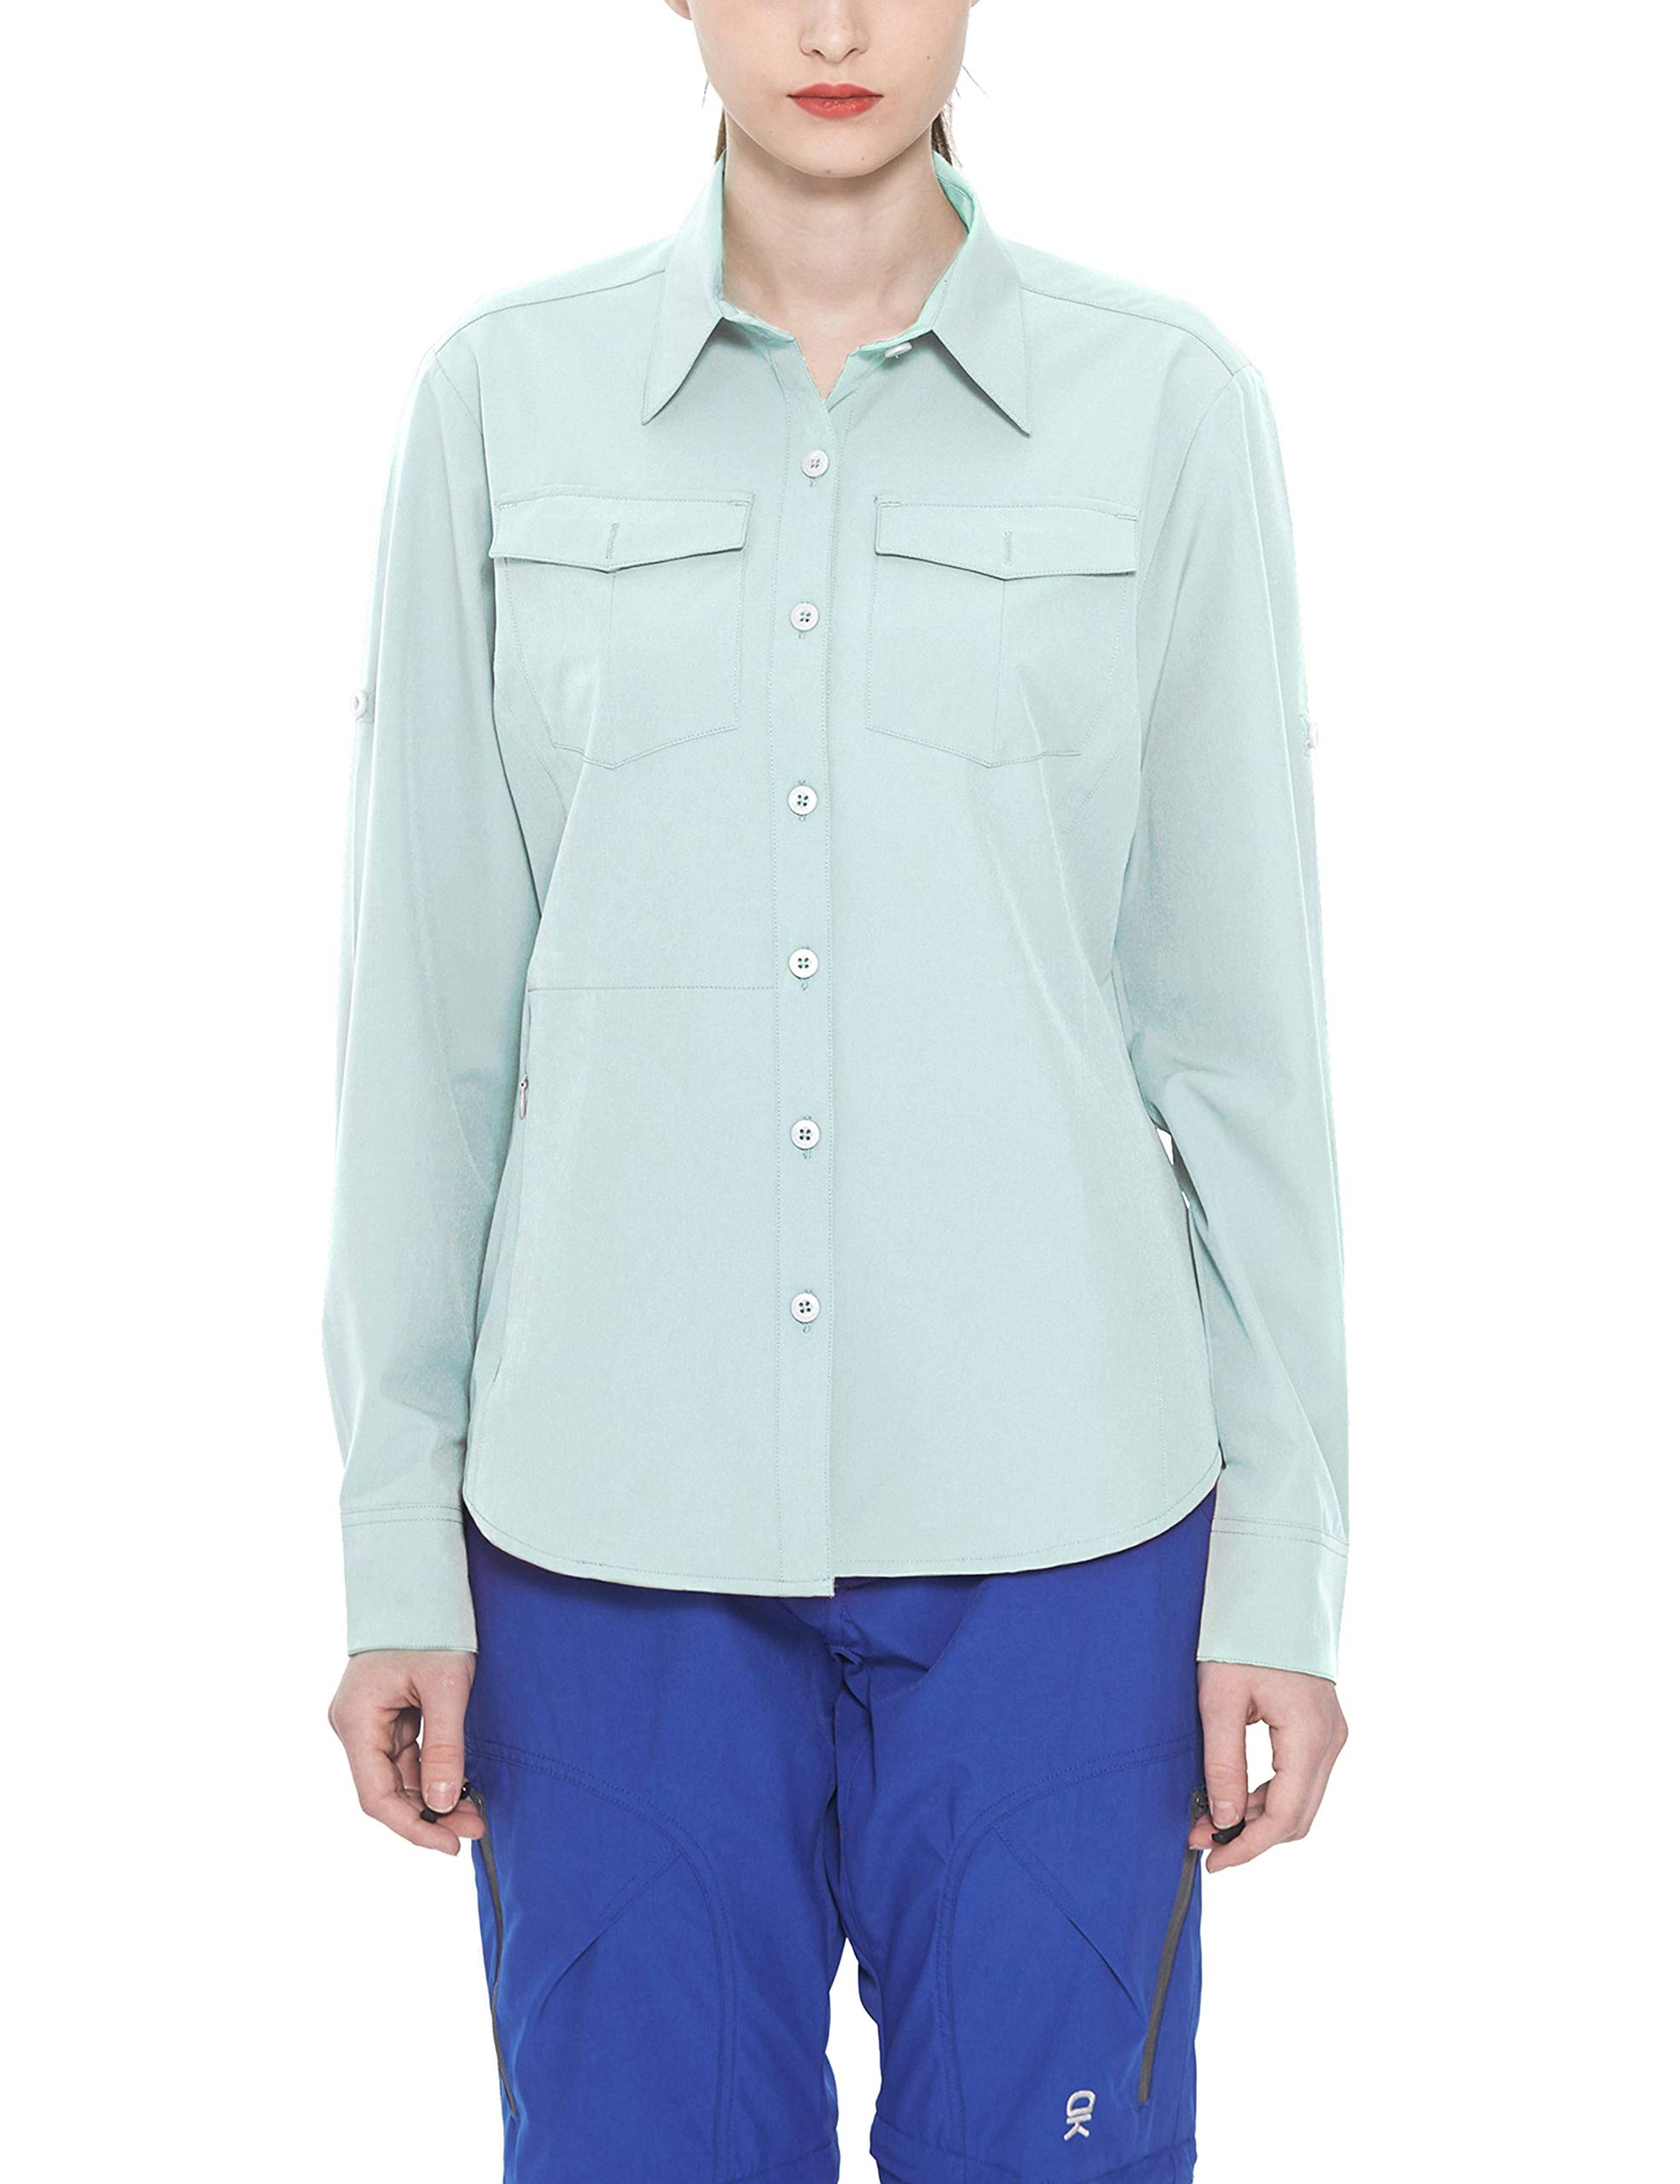 Little Donkey Andy Women's Stretch Quick Dry Water Resistant Outdoor Shirts UPF50+ for Hiking, Travel, Camping Light Blue Size XS by Little Donkey Andy